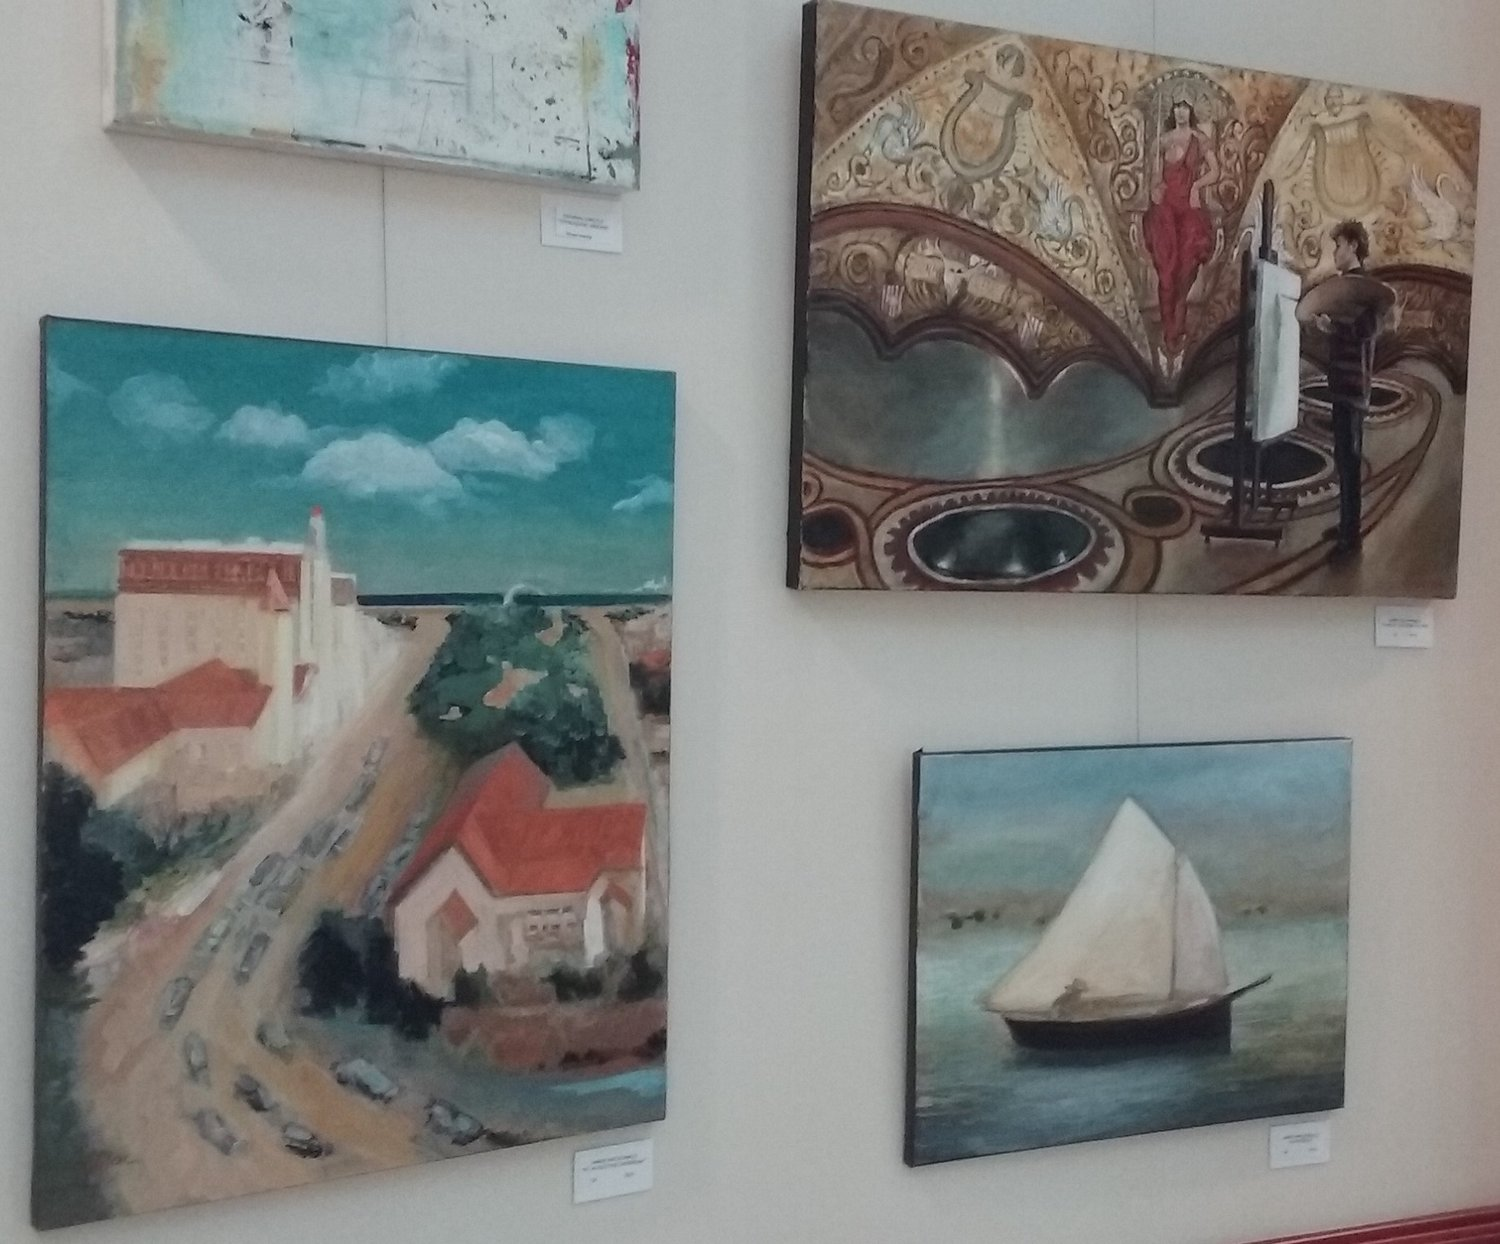 Several works of art are seen on one wall.